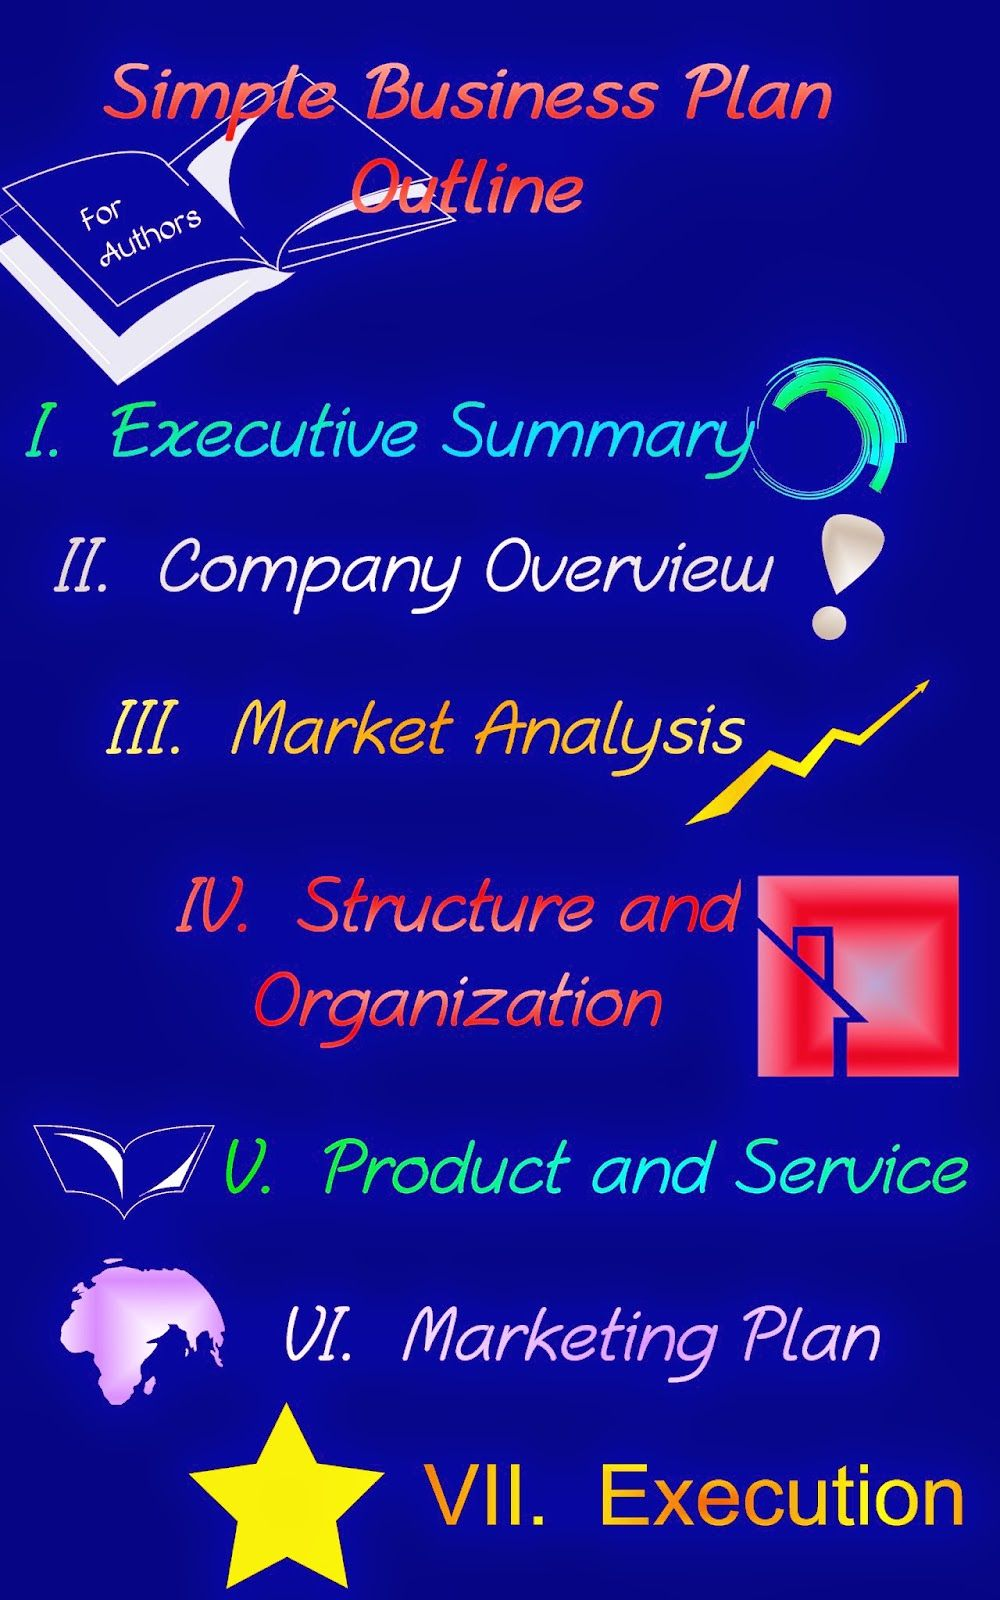 Simple Business Plan Outline Business plan outline